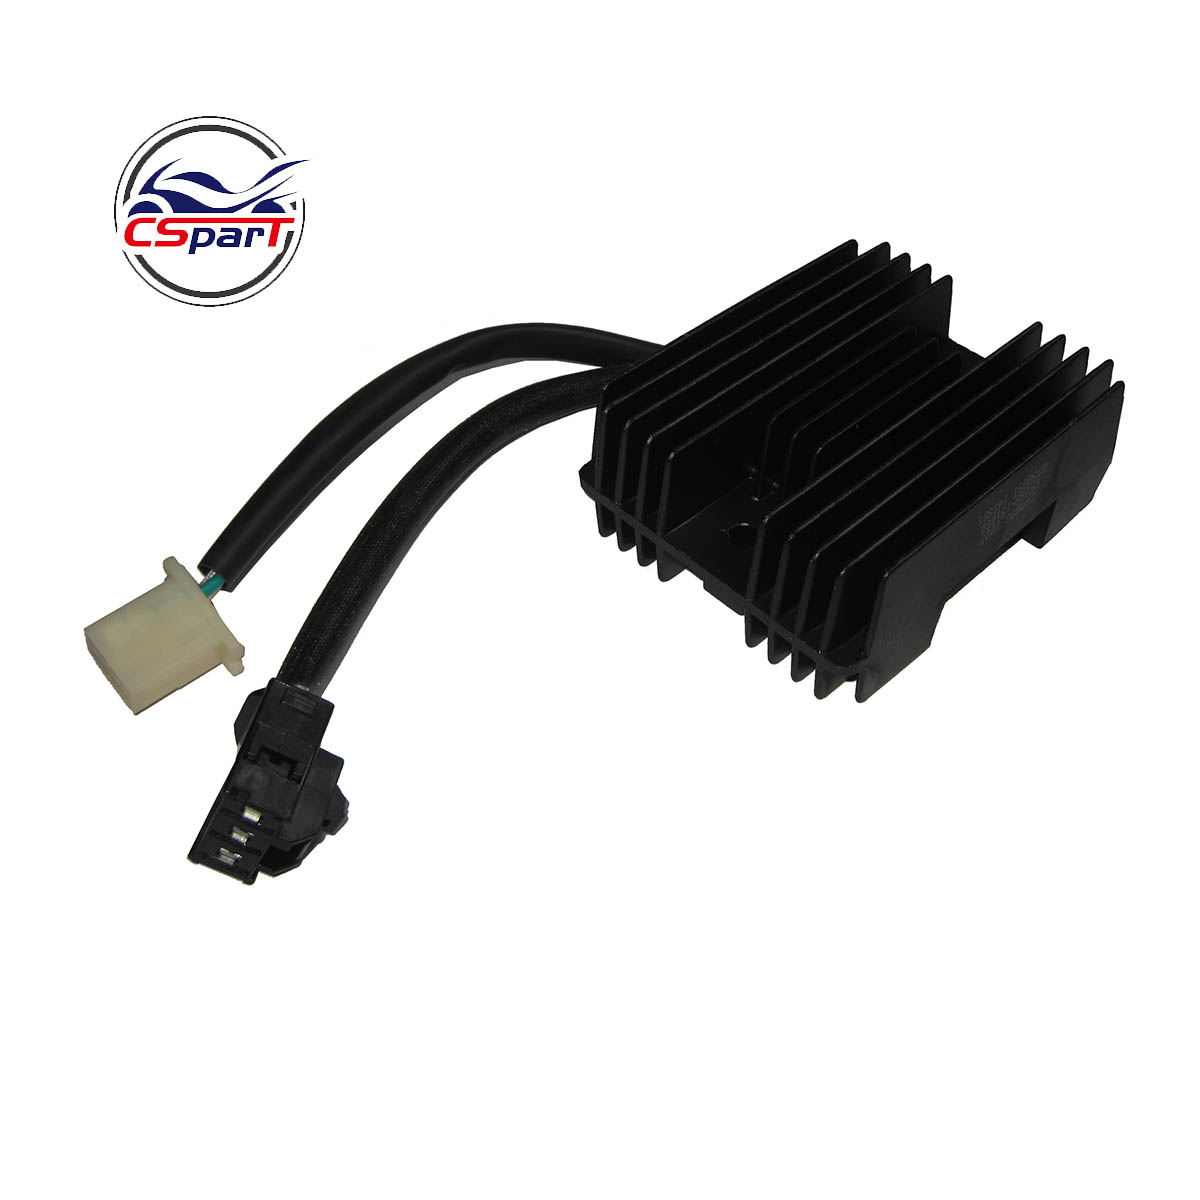 CF188 Voltage Regulator Rectifier For CF MOTO 500 CF500 500CC UTV ATV GO KART 12V  0180-151000